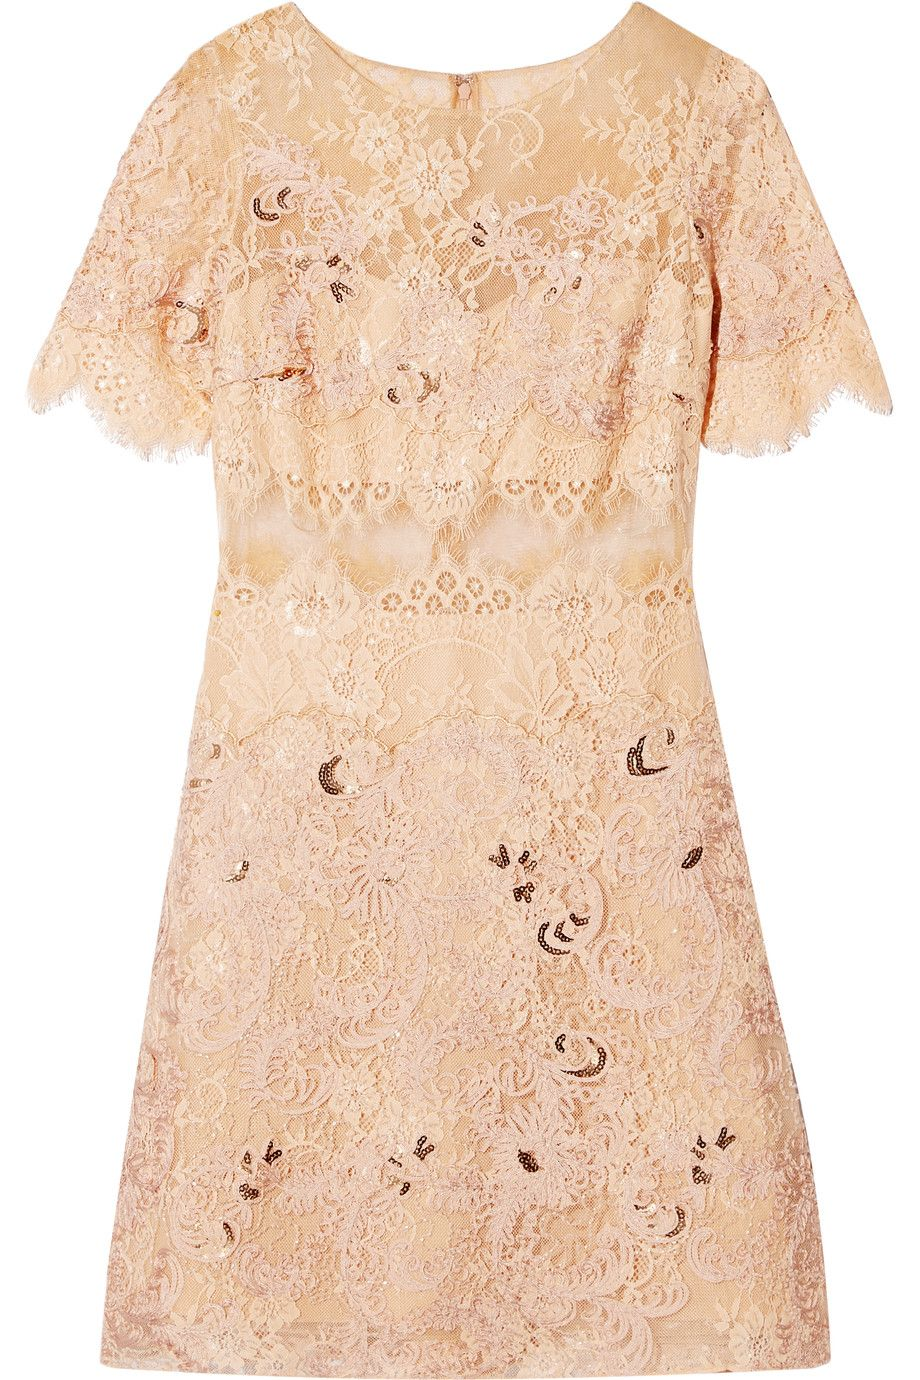 Marchesa notte green lace dress  Image result for marchesa notte outnet mini dress  Wedding flowers